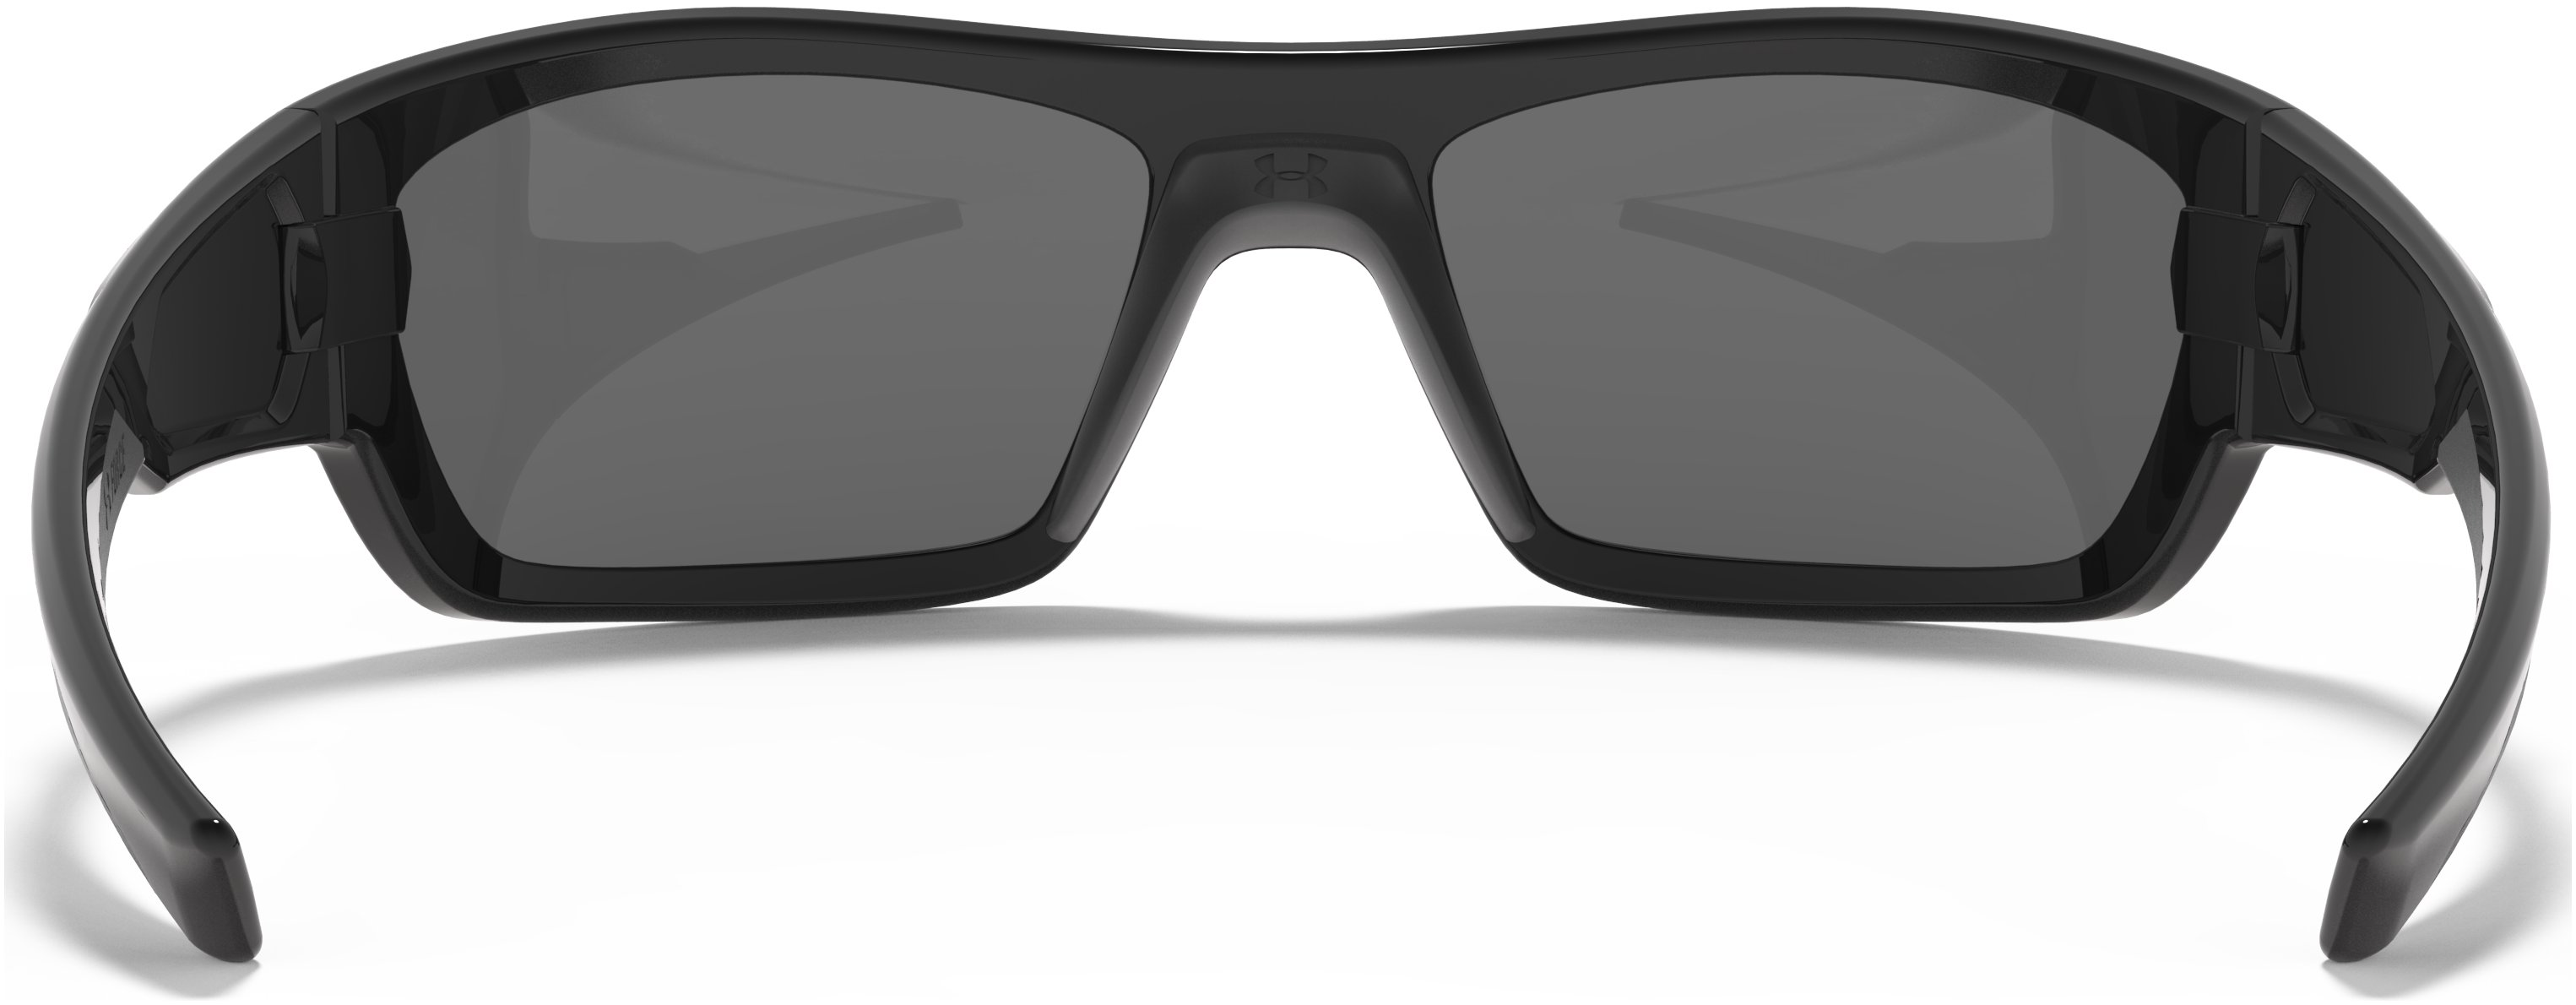 UA Force Sunglasses, Shiny Black